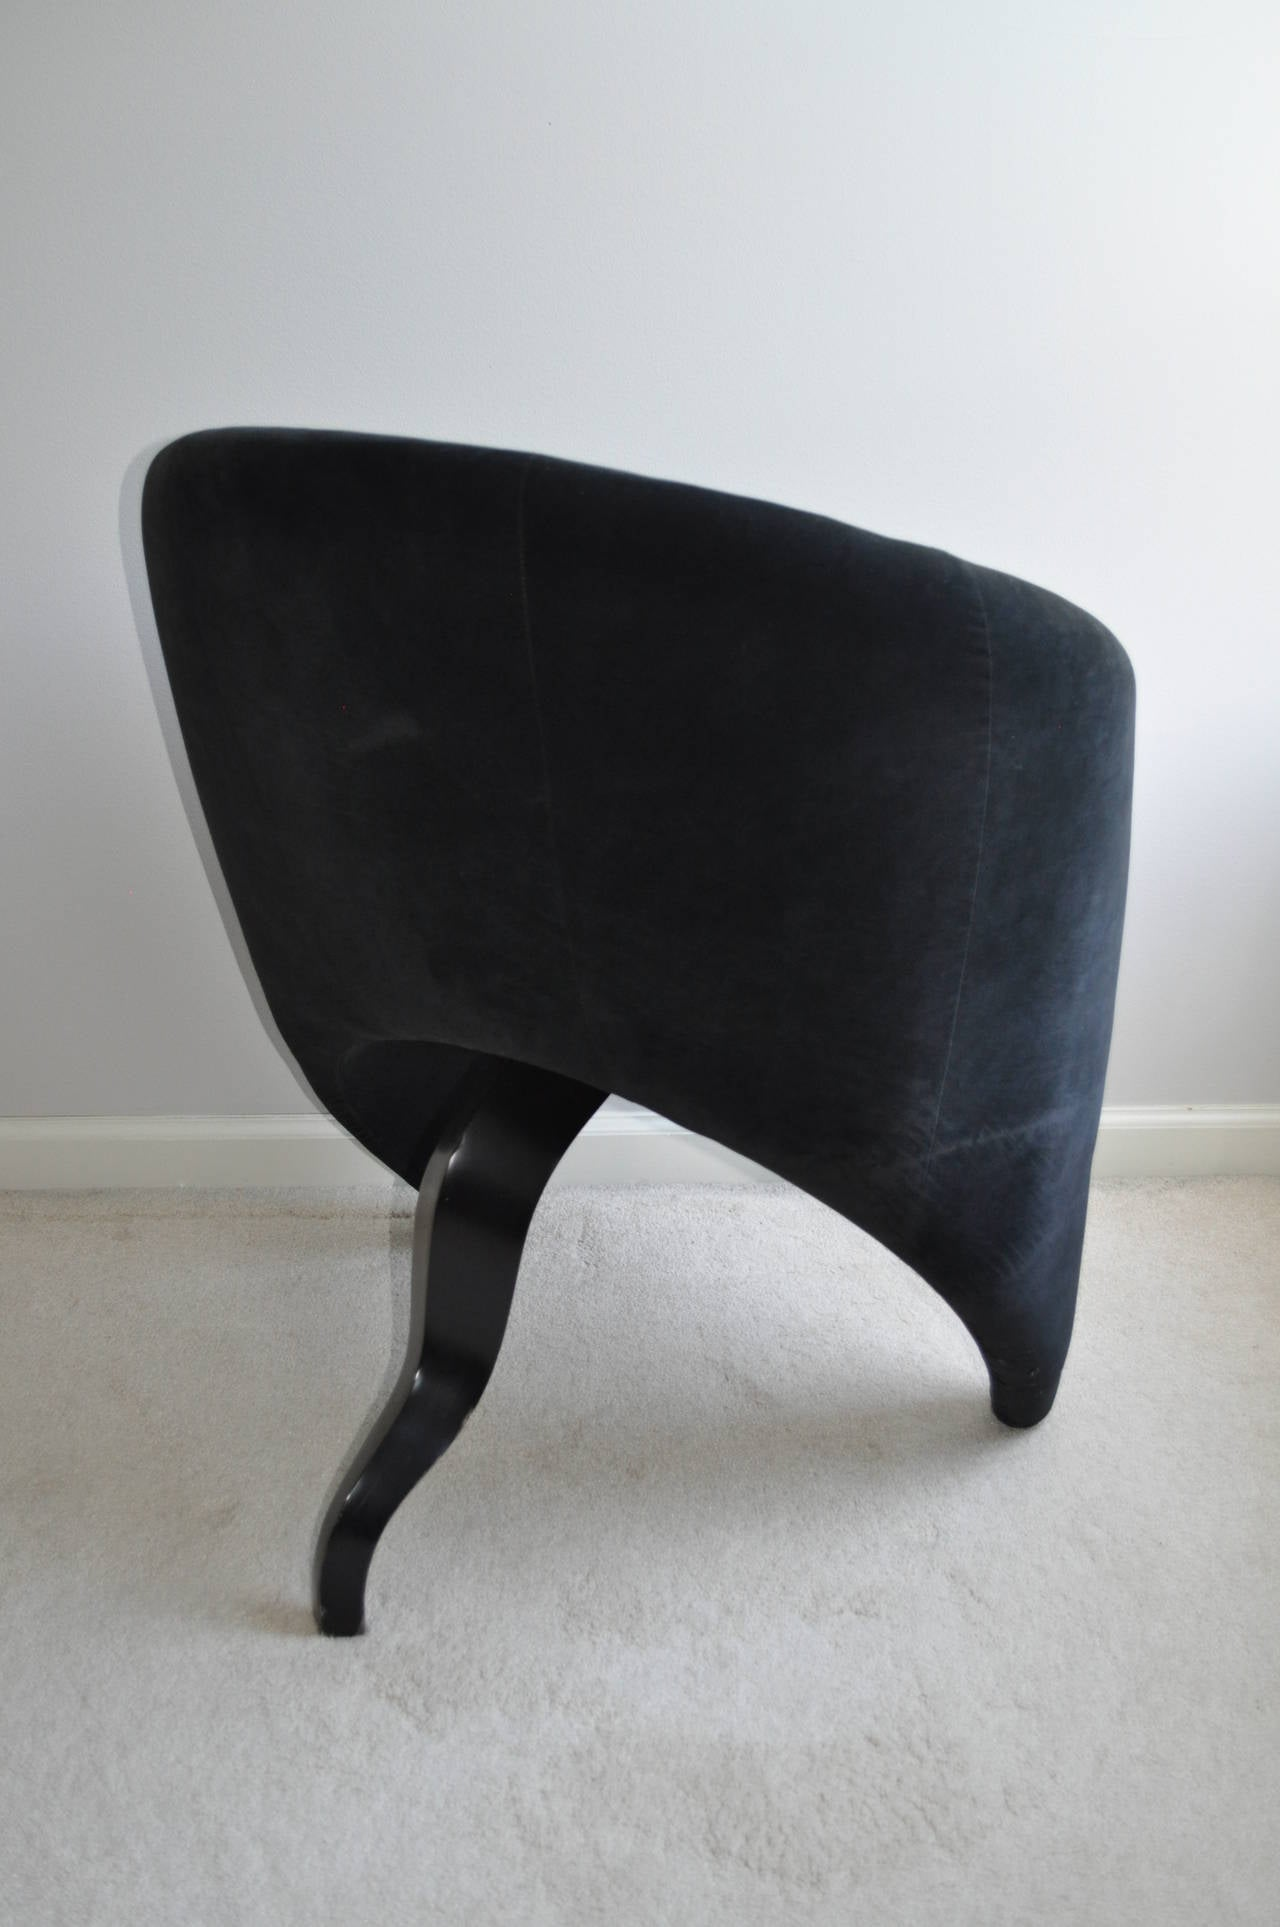 1980s Sculptural Three-Leg Modern Memphis Style Armchair In Good Condition For Sale In Lambertville, NJ